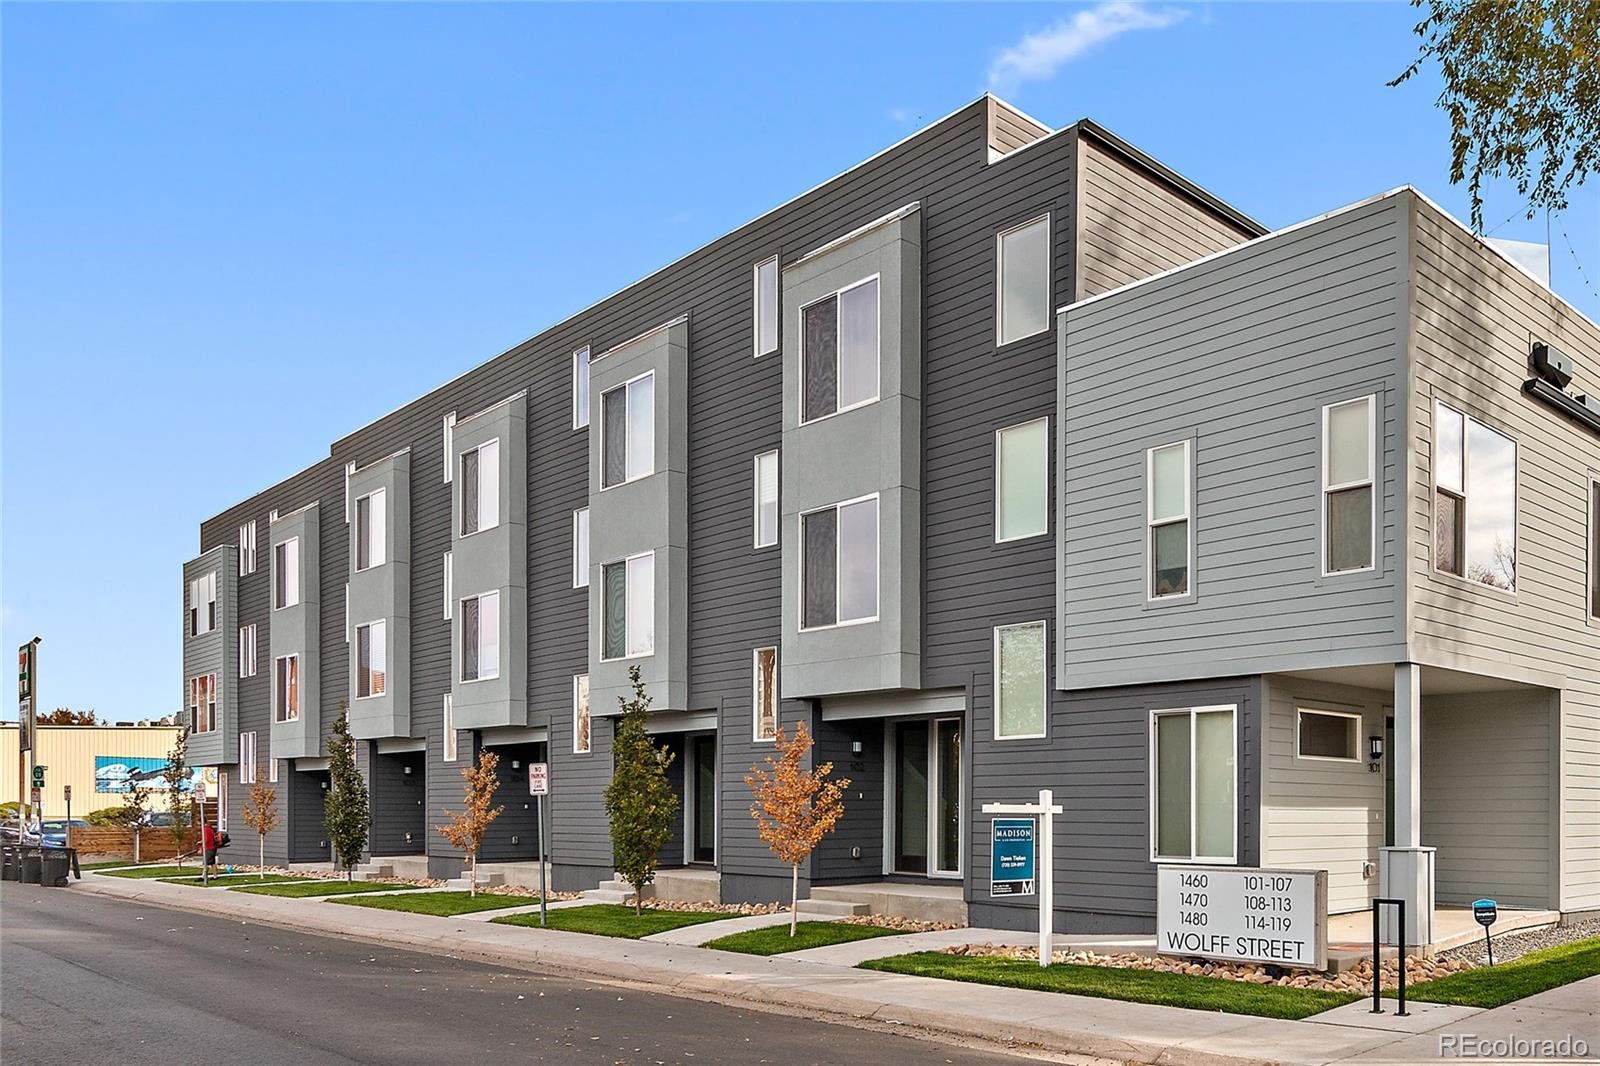 MLS# 7807225 - 1 - 1480 Wolff Street #114, Denver, CO 80204